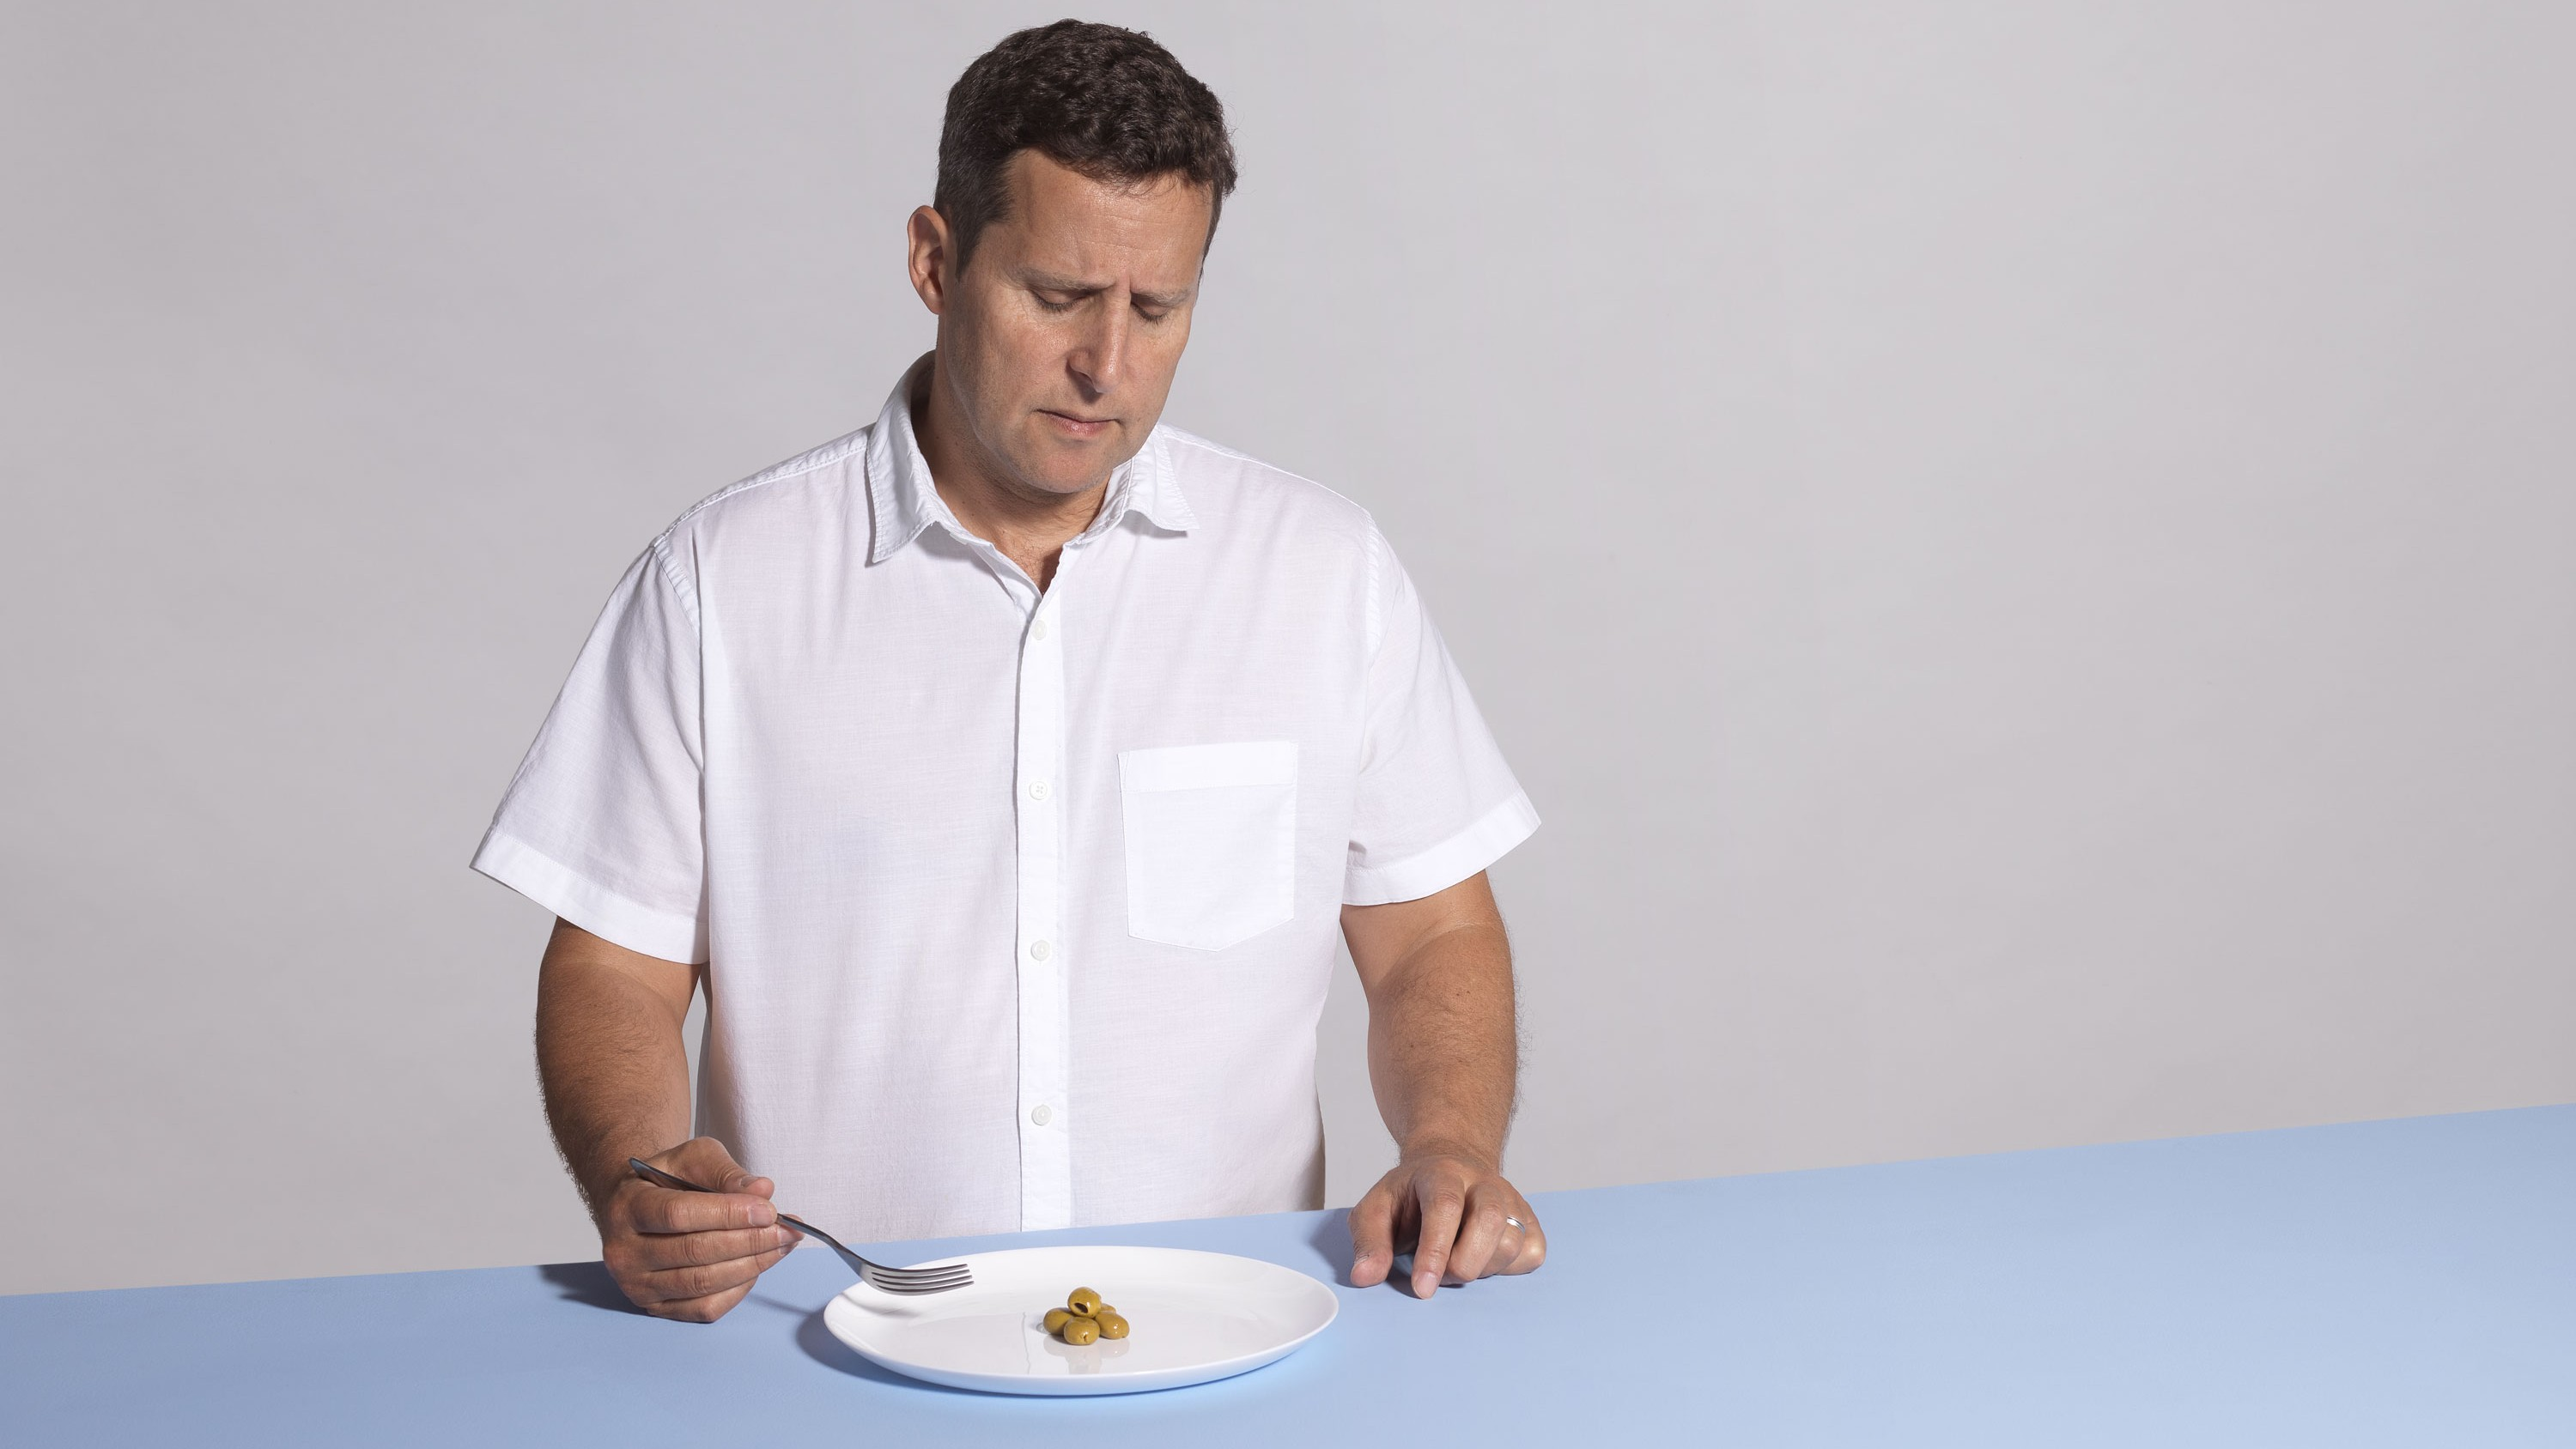 I tried Prolon's starvation diet so you wouldn't have to